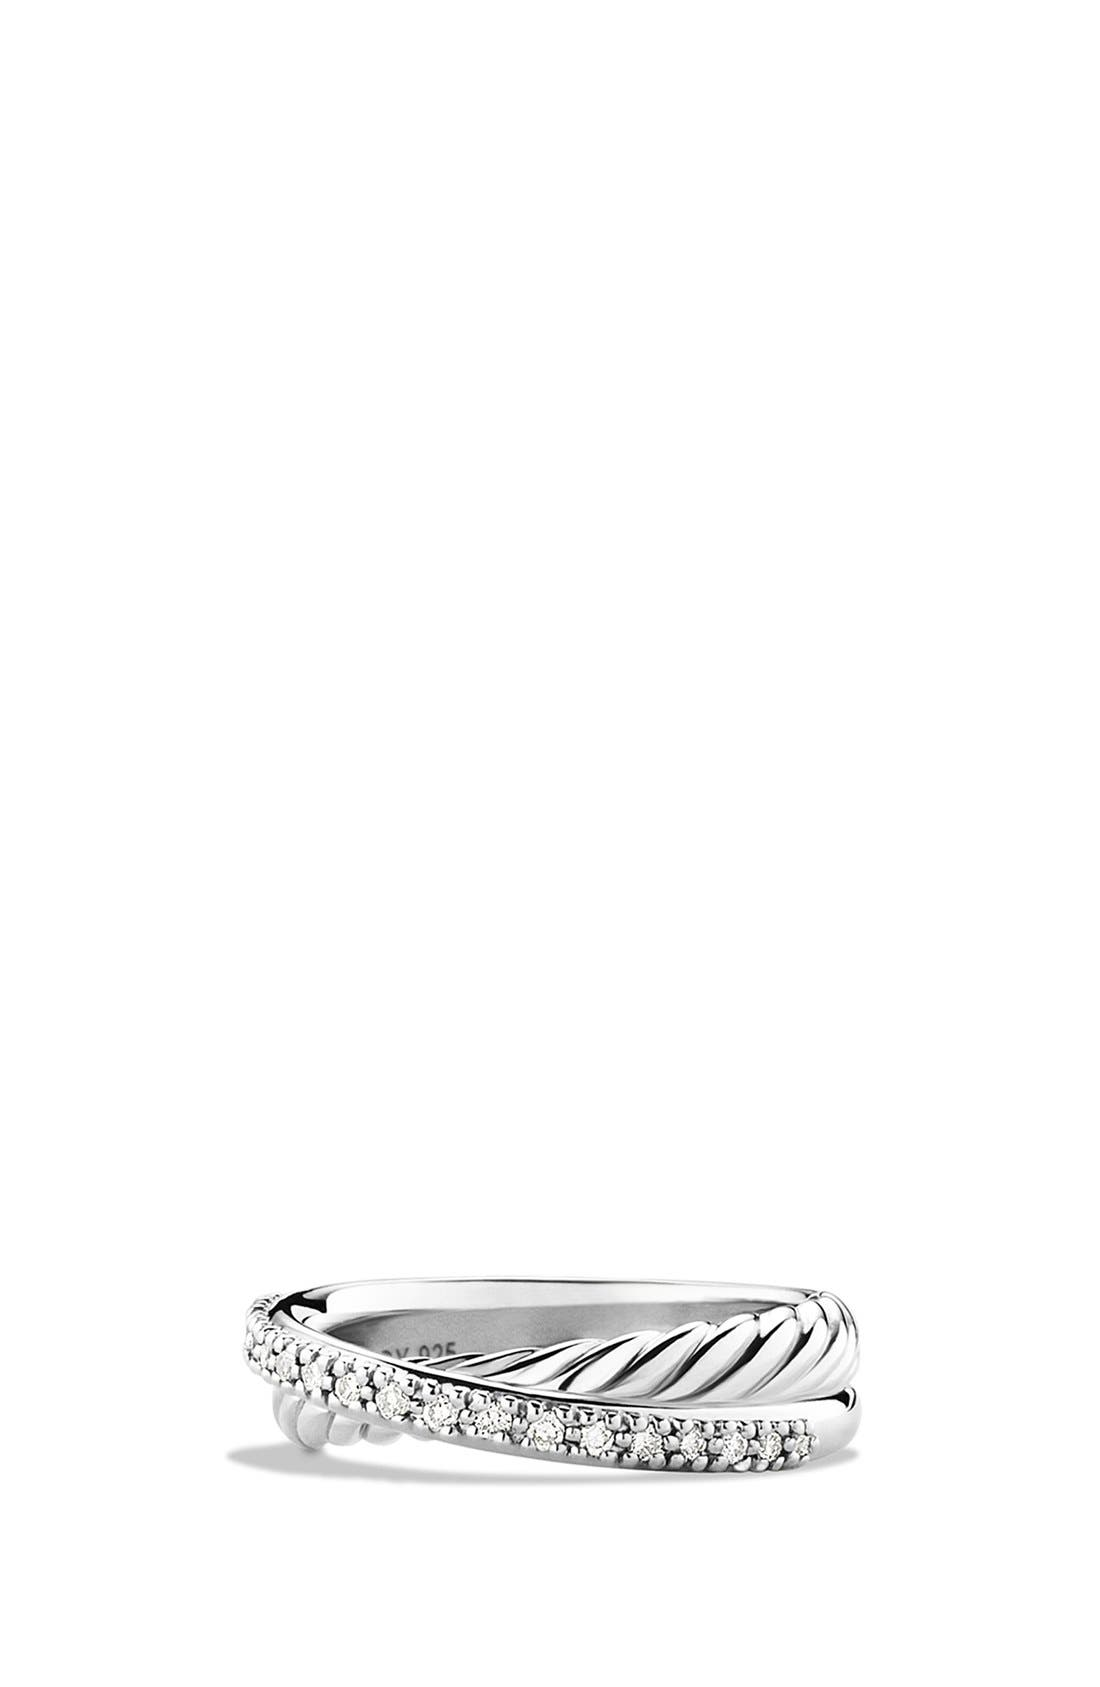 'Crossover' Ring with Diamonds,                             Main thumbnail 1, color,                             SILVER